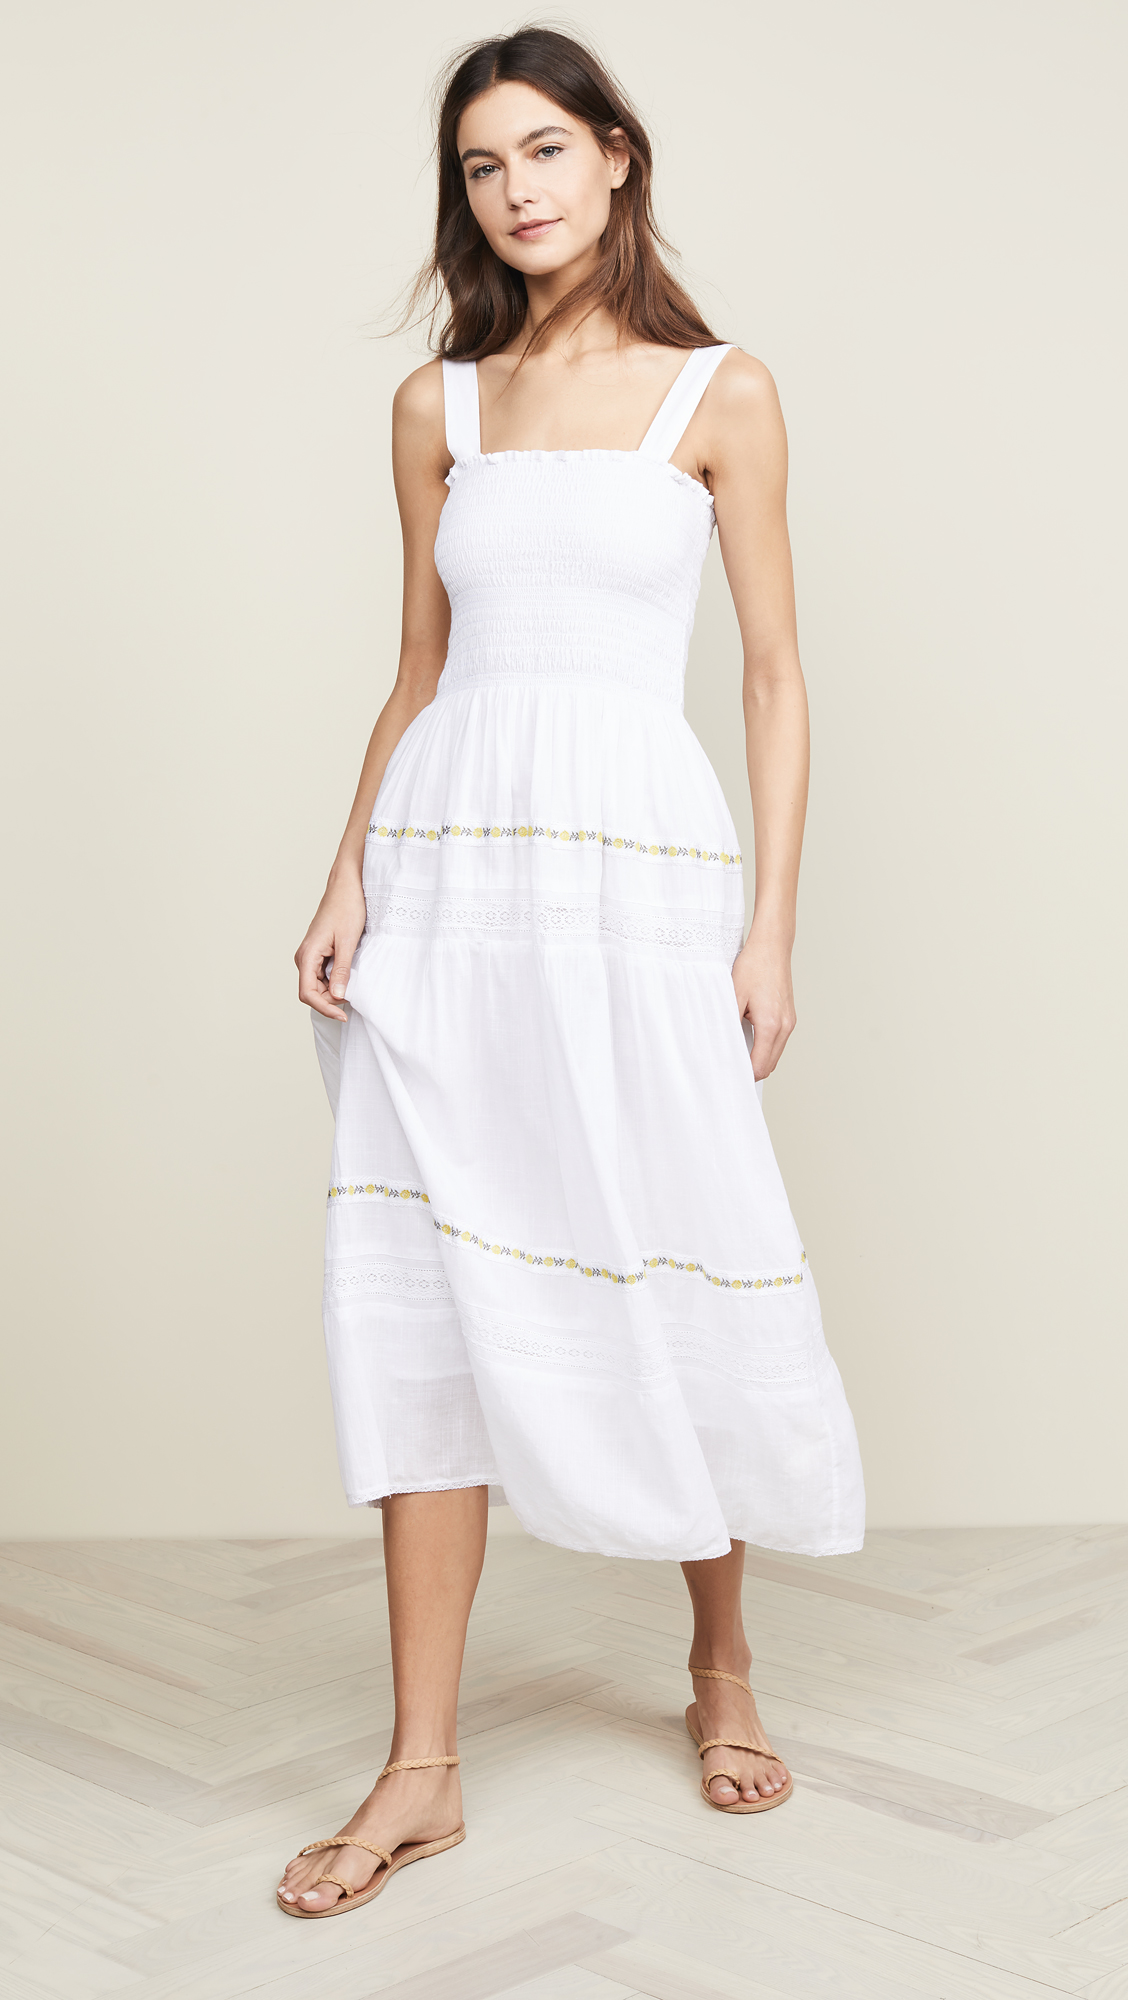 The Great Embroidered Clover Dress with Rose Trim - The Most Perfect Spring Maxi Dress